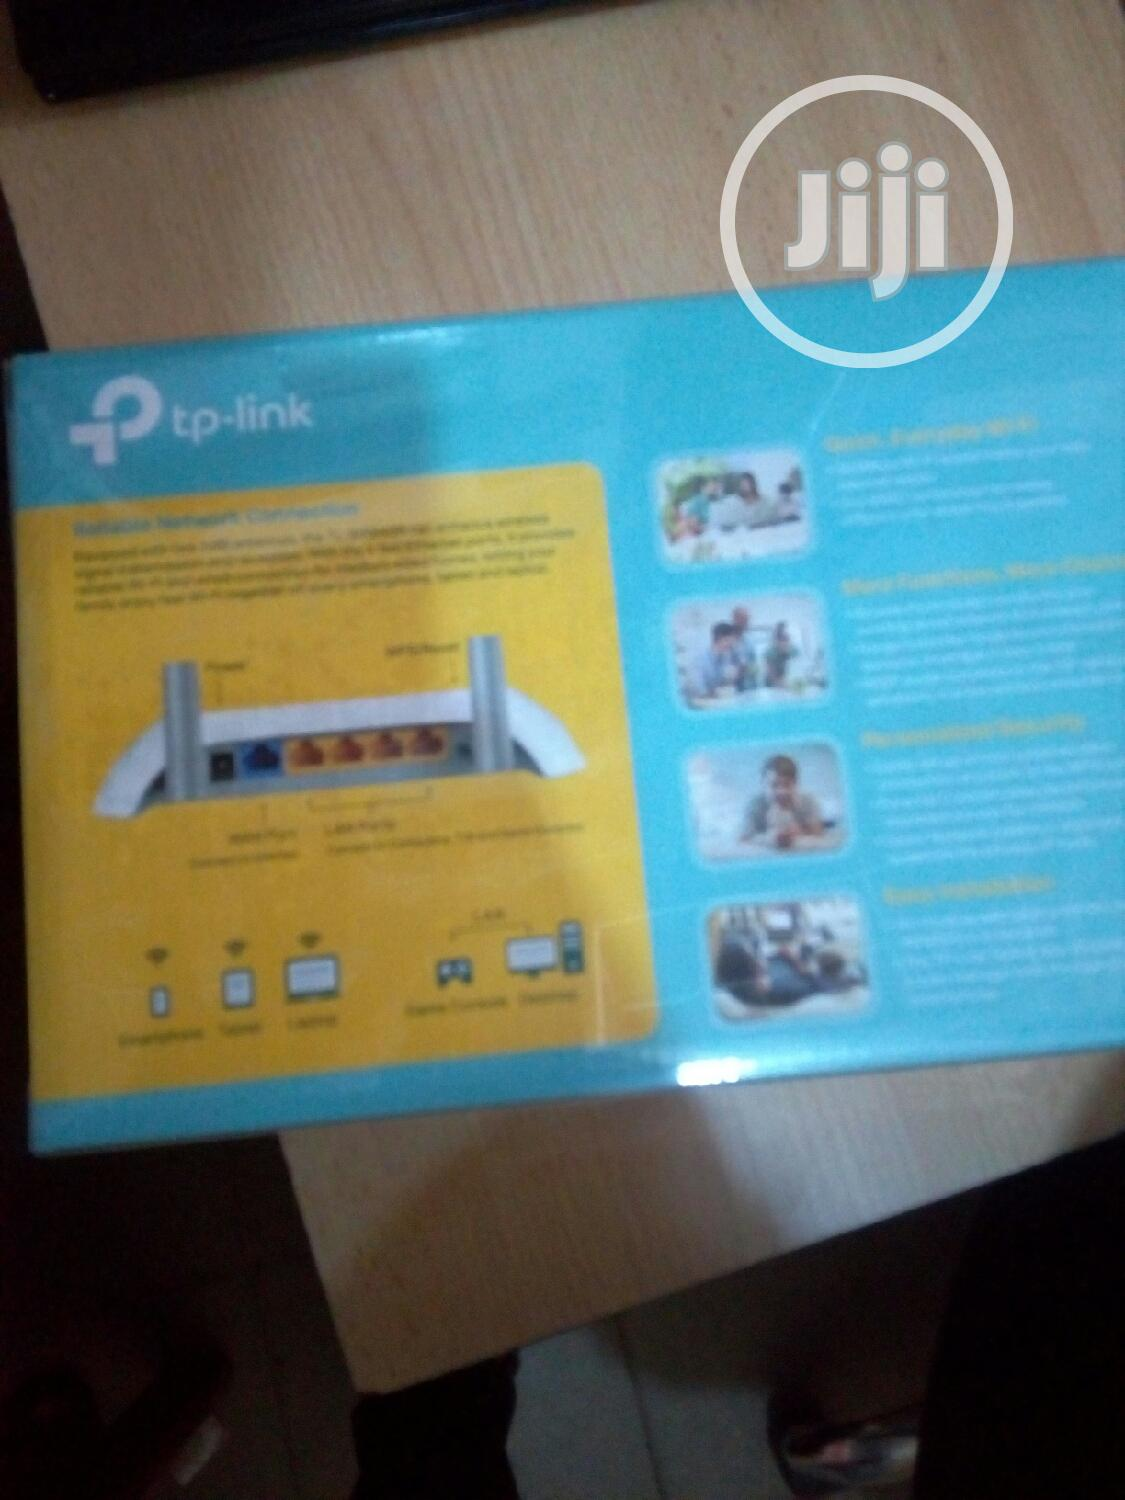 Tp-link 300mbps Wireless Router | Networking Products for sale in Ikeja, Lagos State, Nigeria